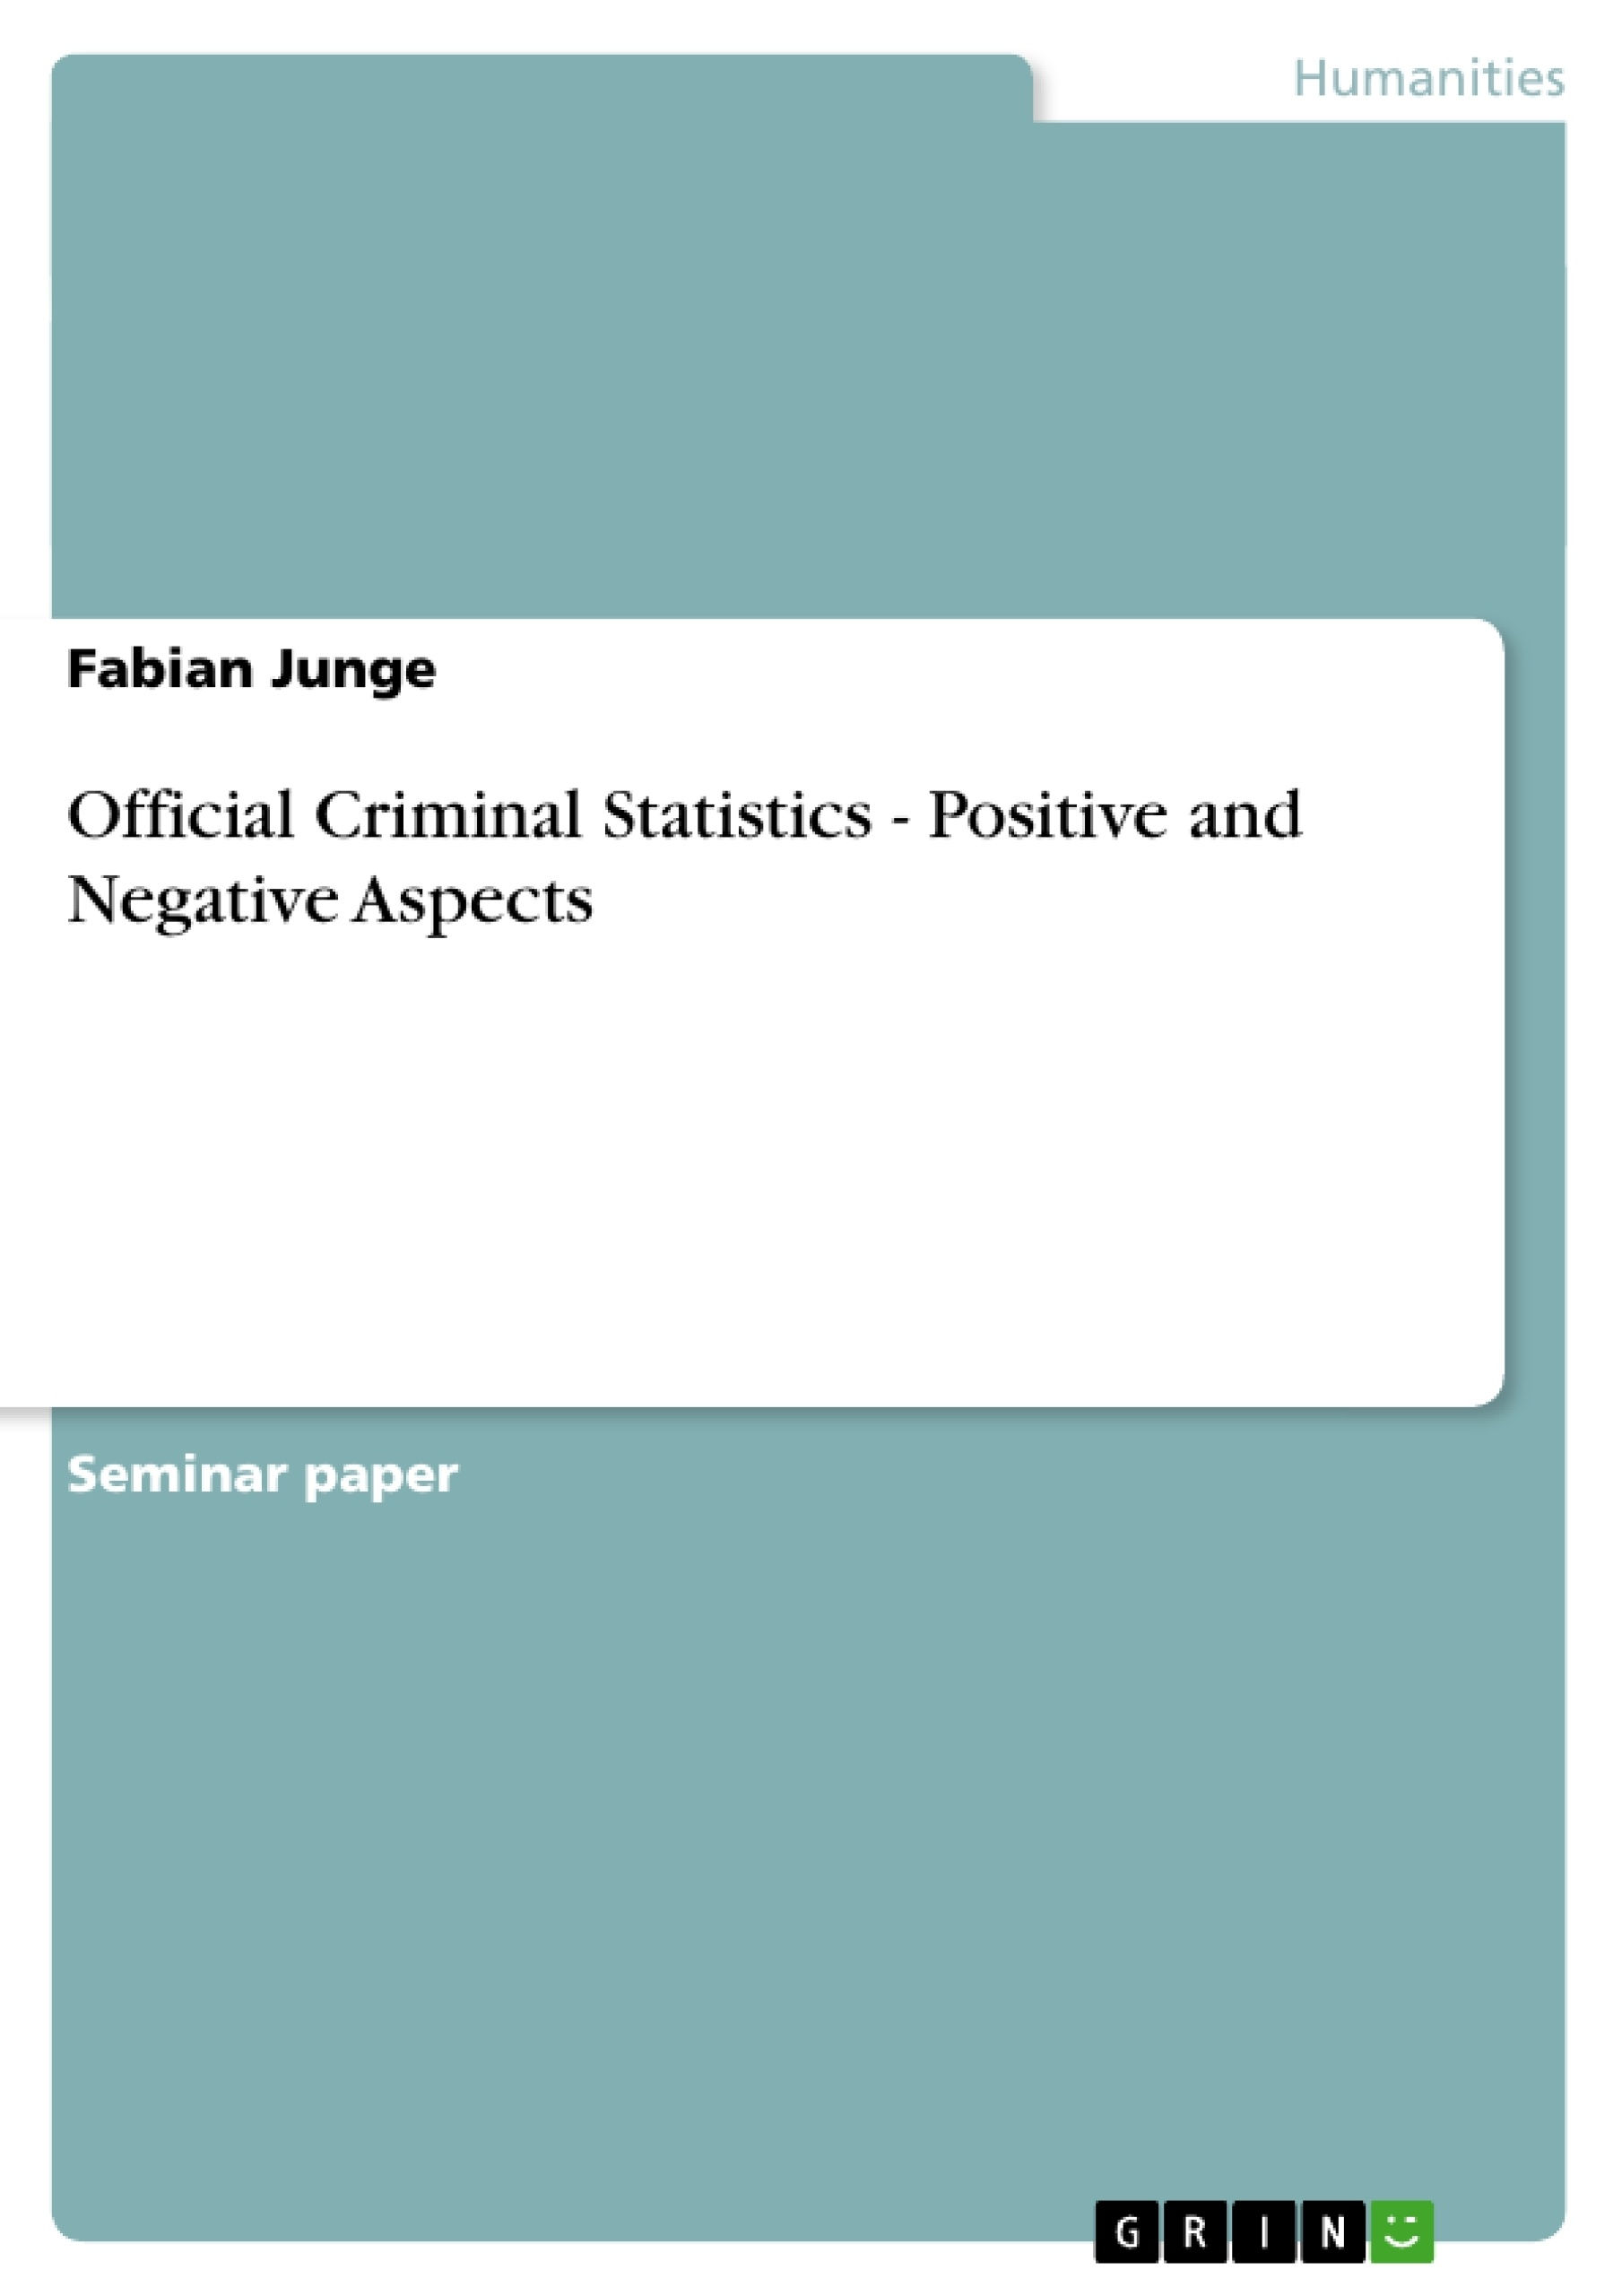 Title: Official Criminal Statistics - Positive and Negative Aspects